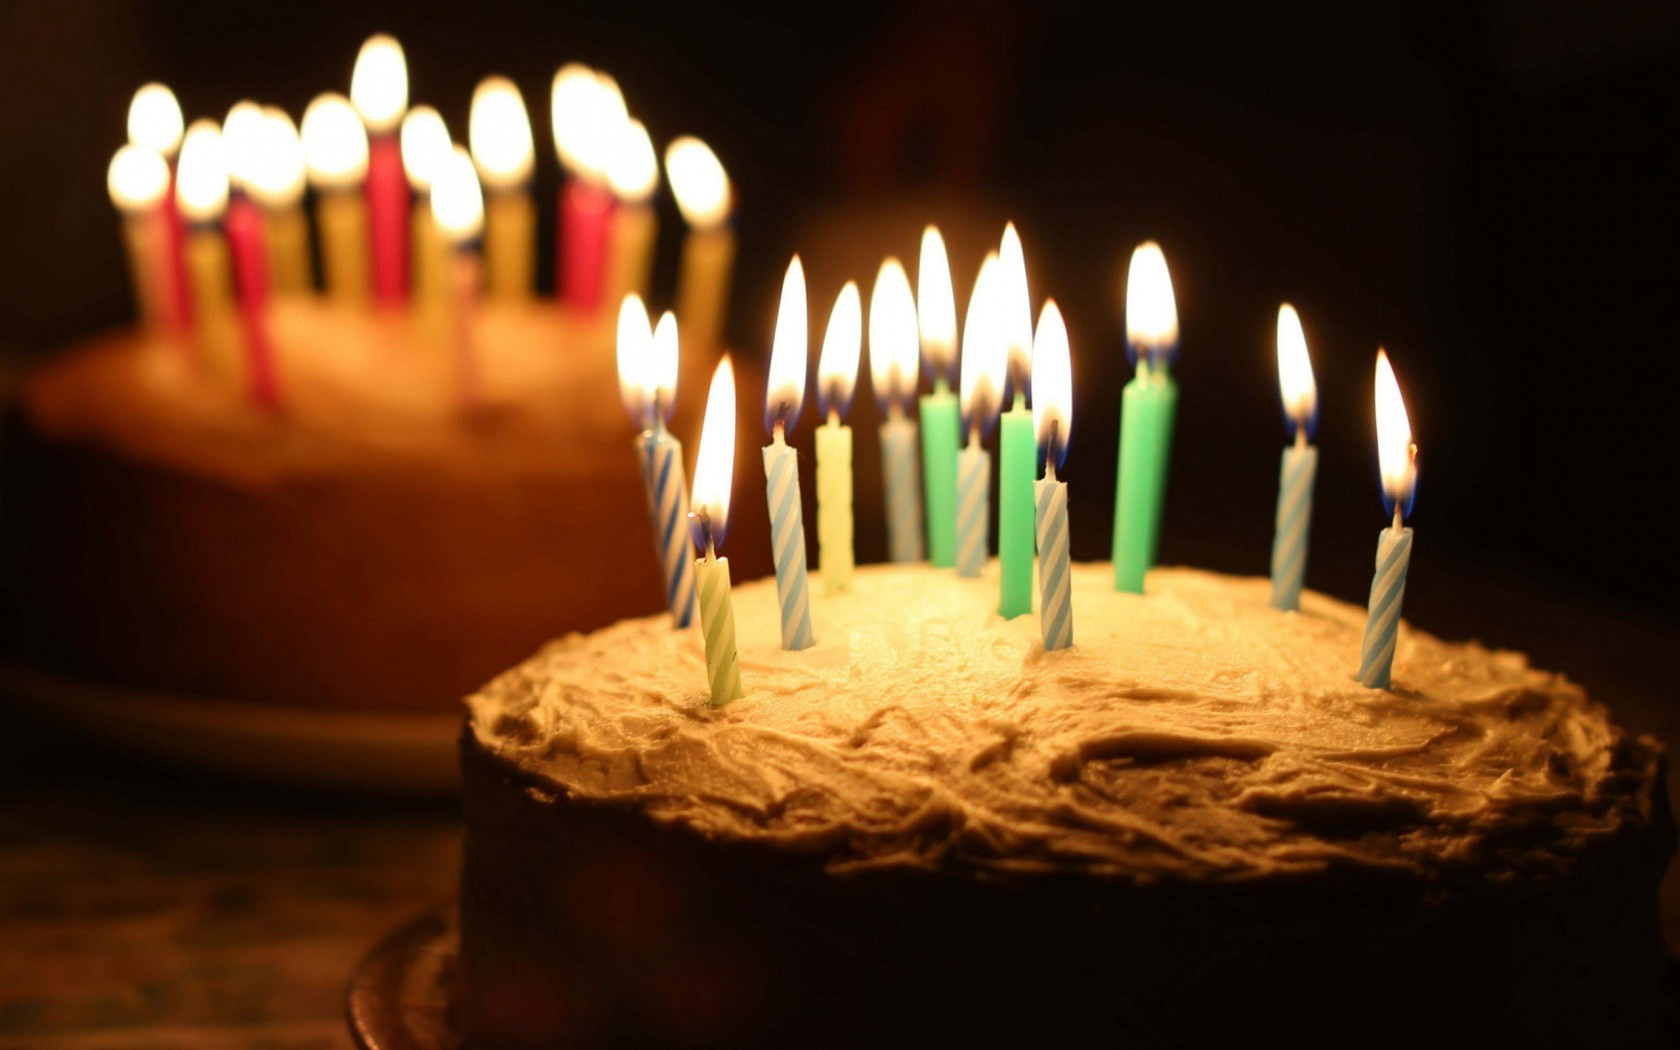 Best ideas about Happy Birthday Cake With Candles . Save or Pin Candles Galore Now.